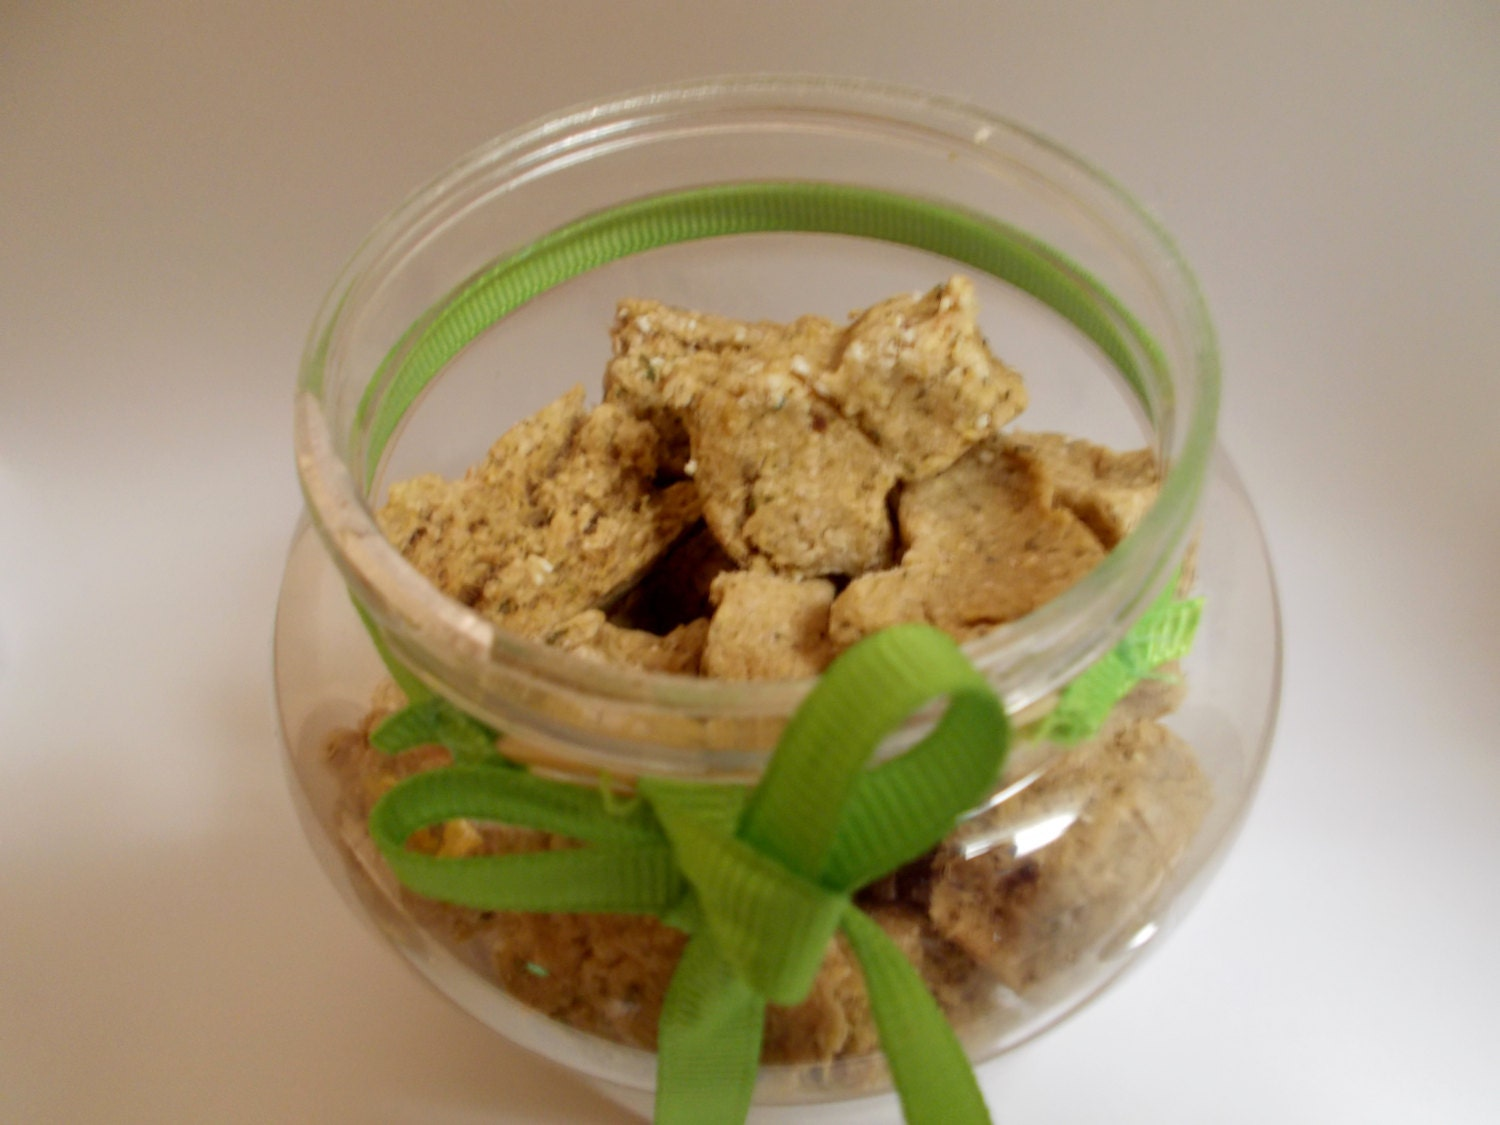 Crazy Crunchy Catnip Cookies By LSM Creation -  Tuna and Catnip Cat Treat